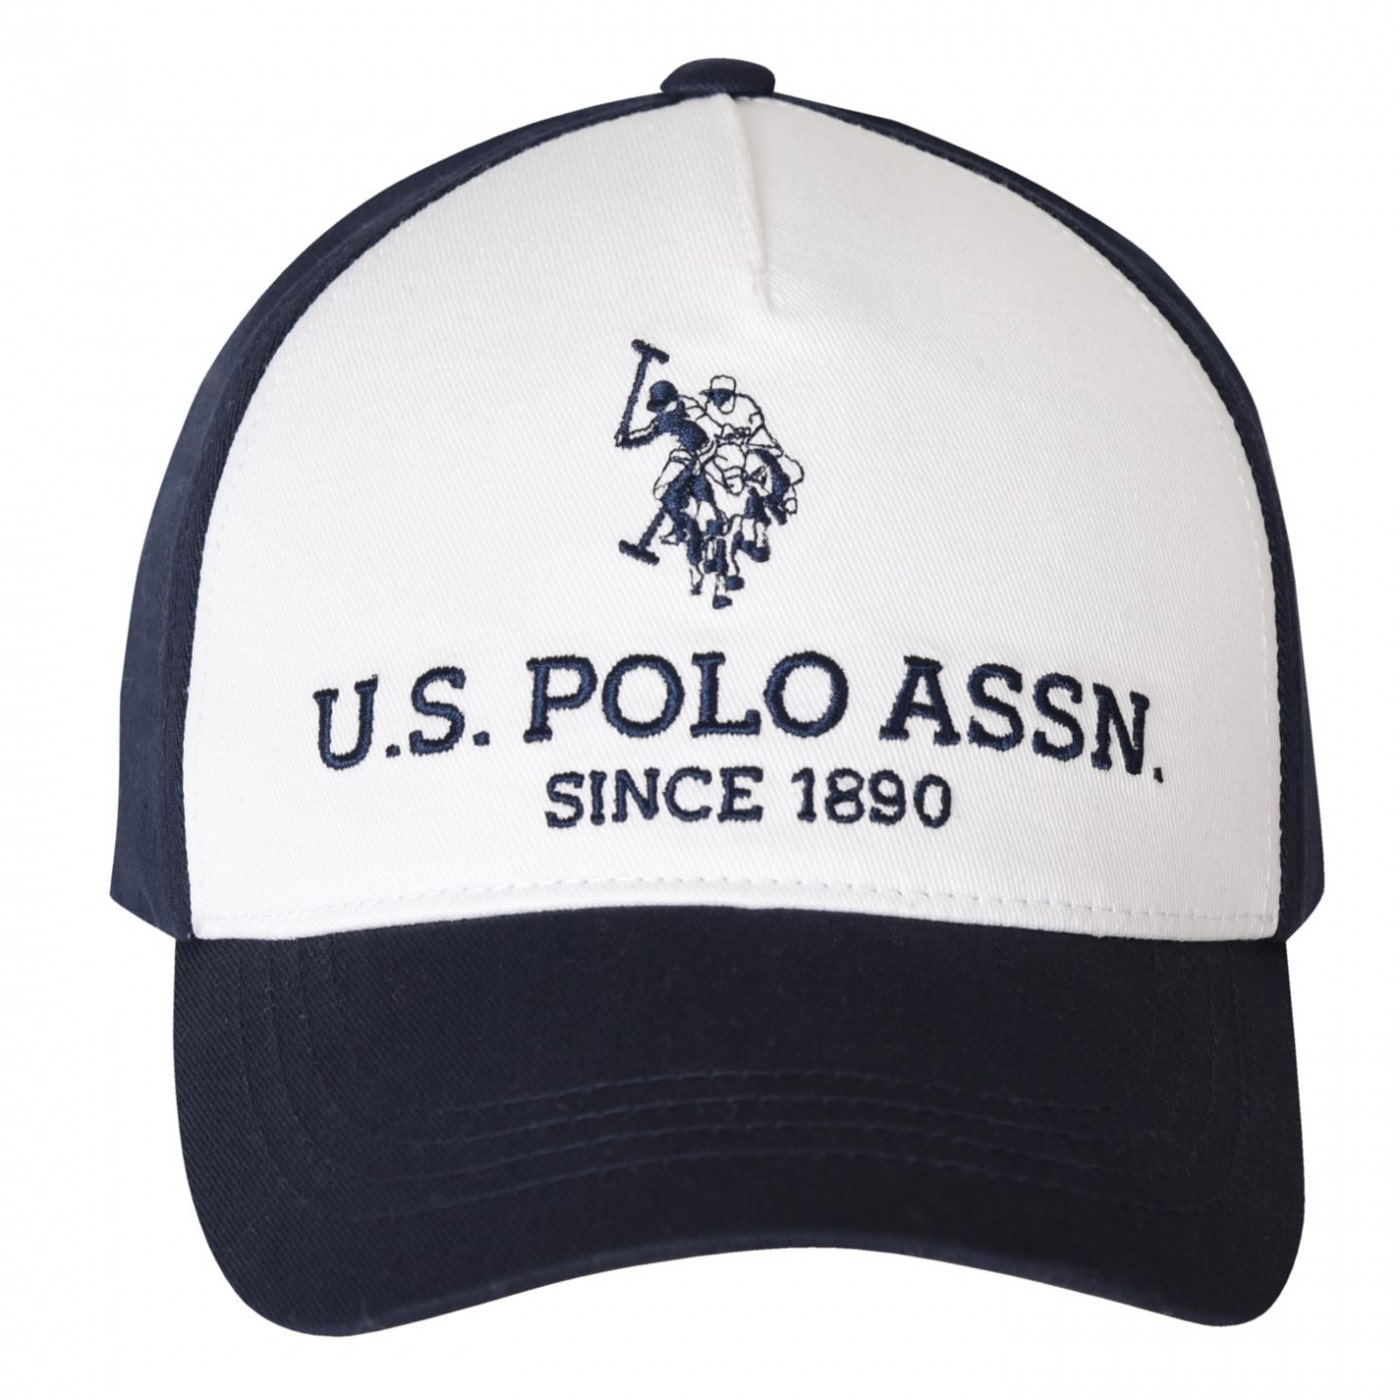 US Polo Assn Since 1891 Baseball Cap